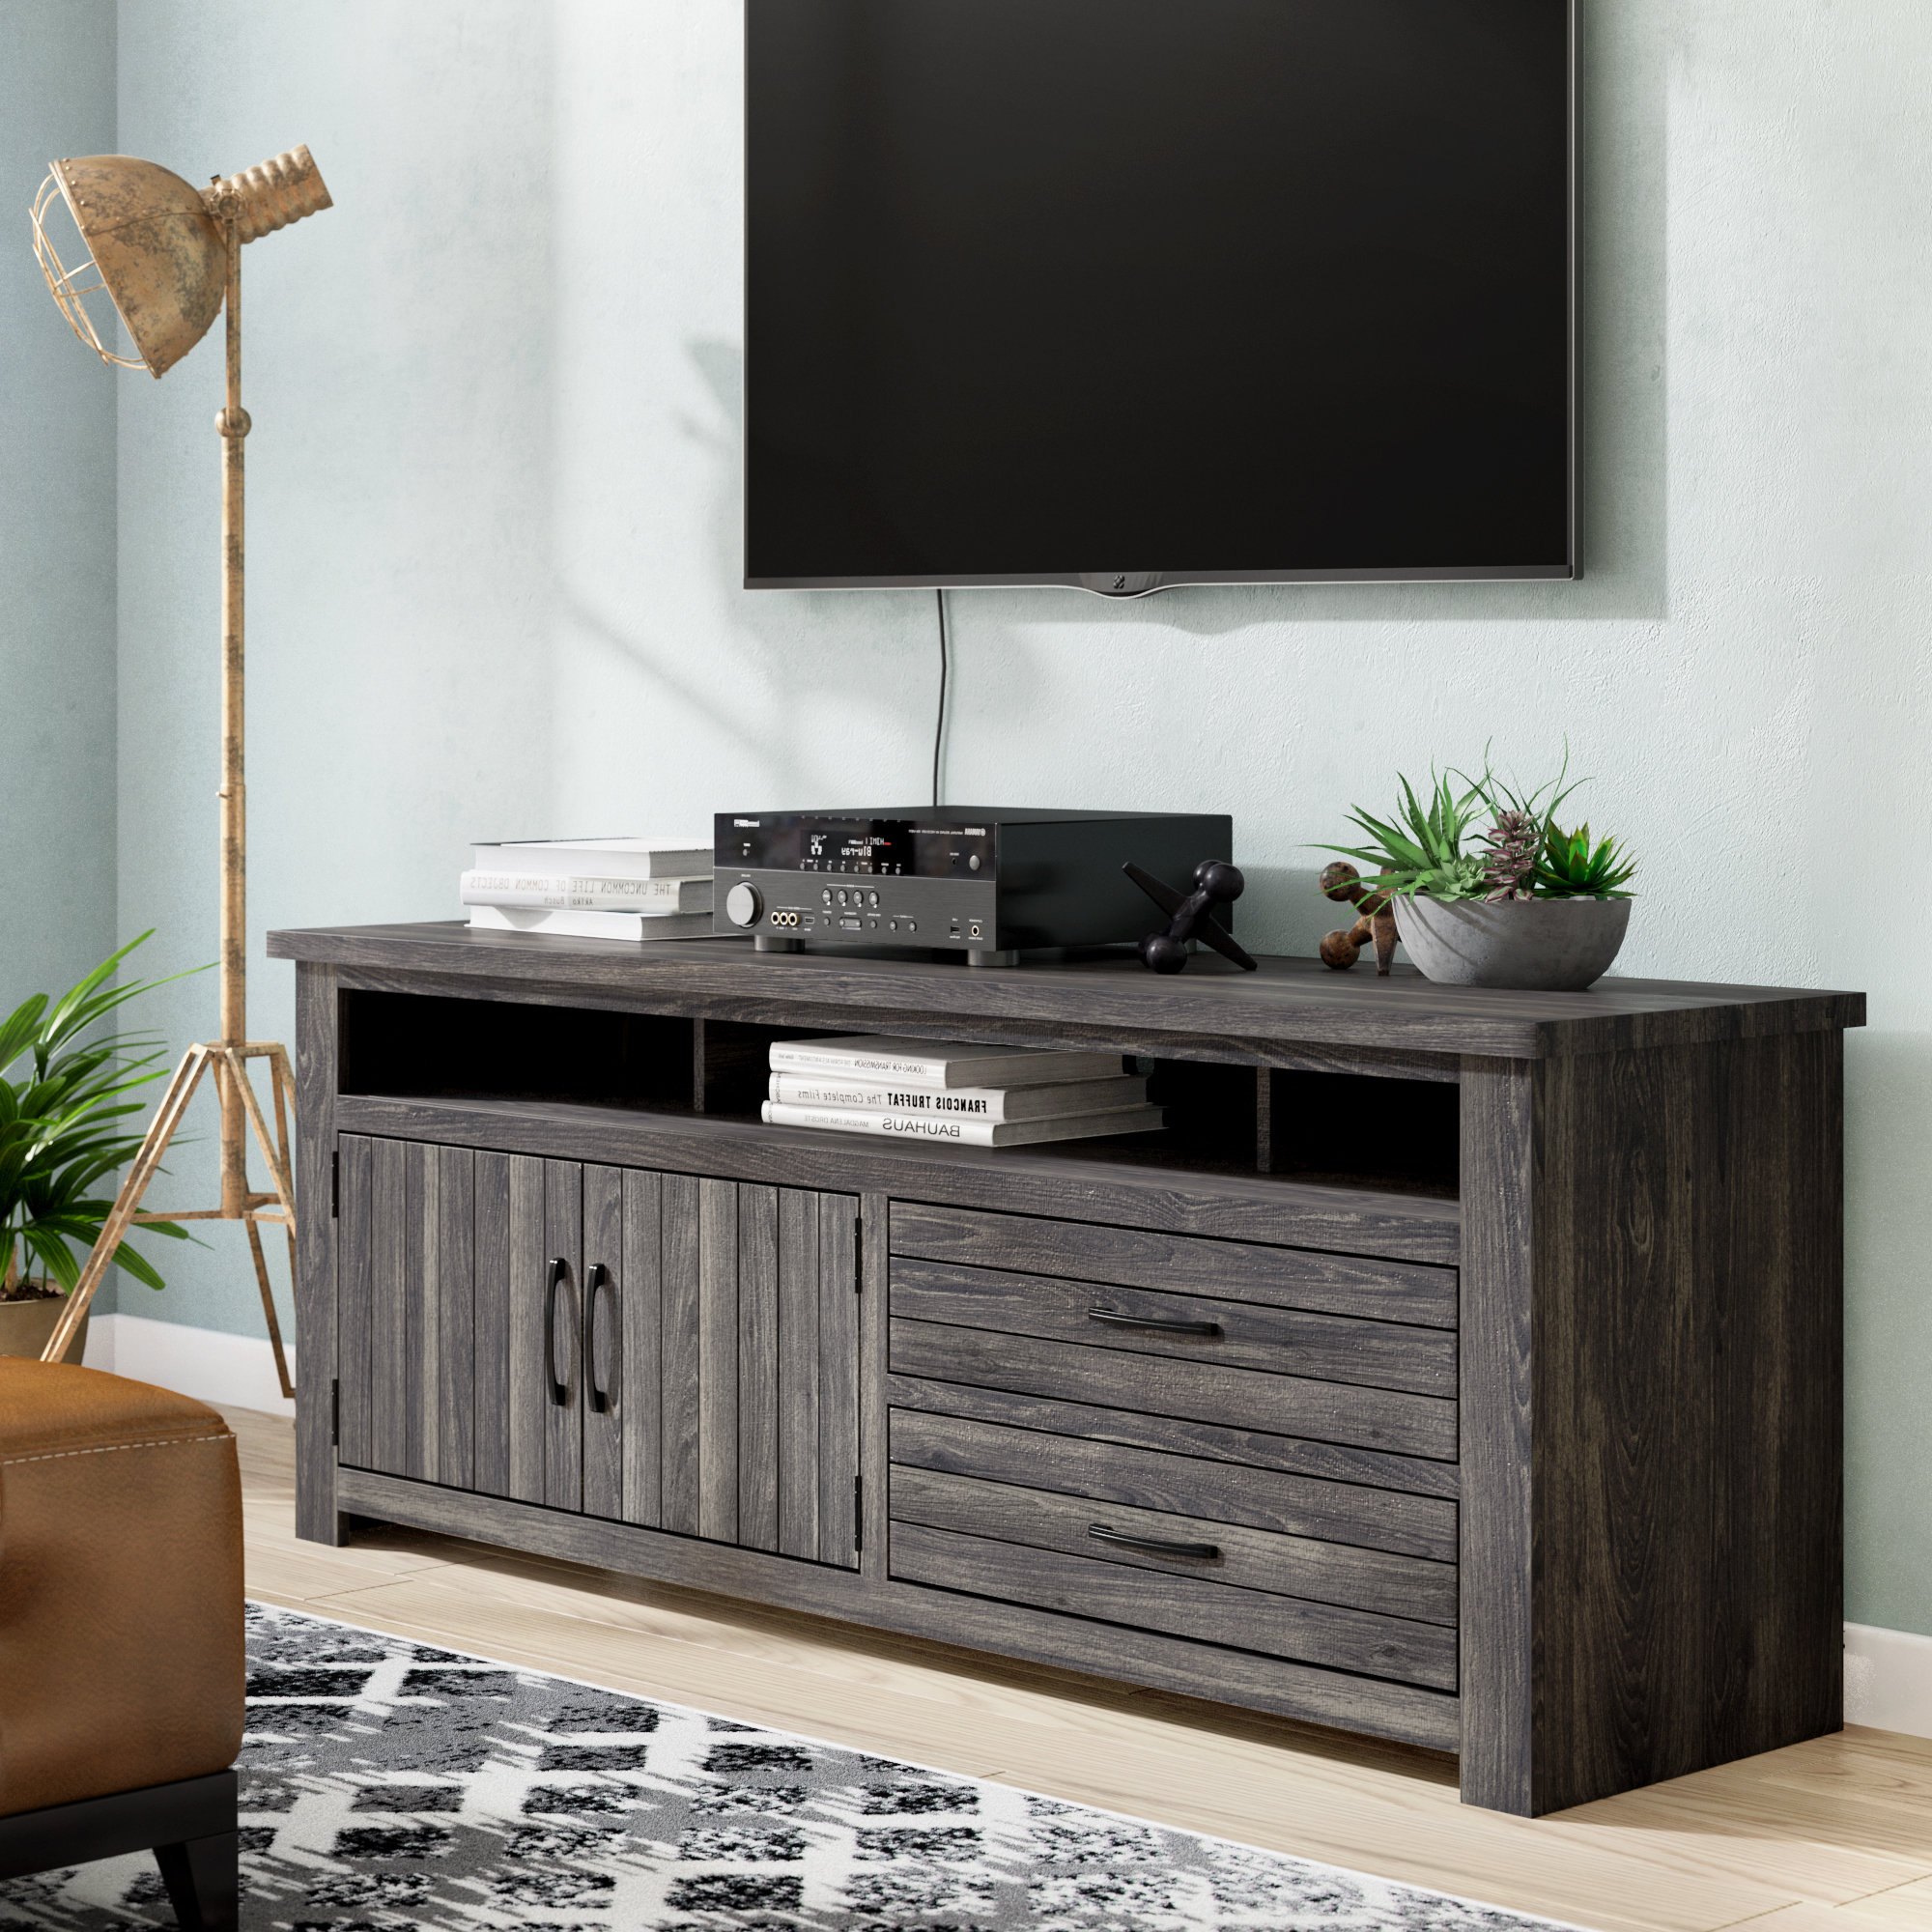 Trendy Annabelle Blue 70 Inch Tv Stands Throughout 70 Inch Tv Stands (View 18 of 20)